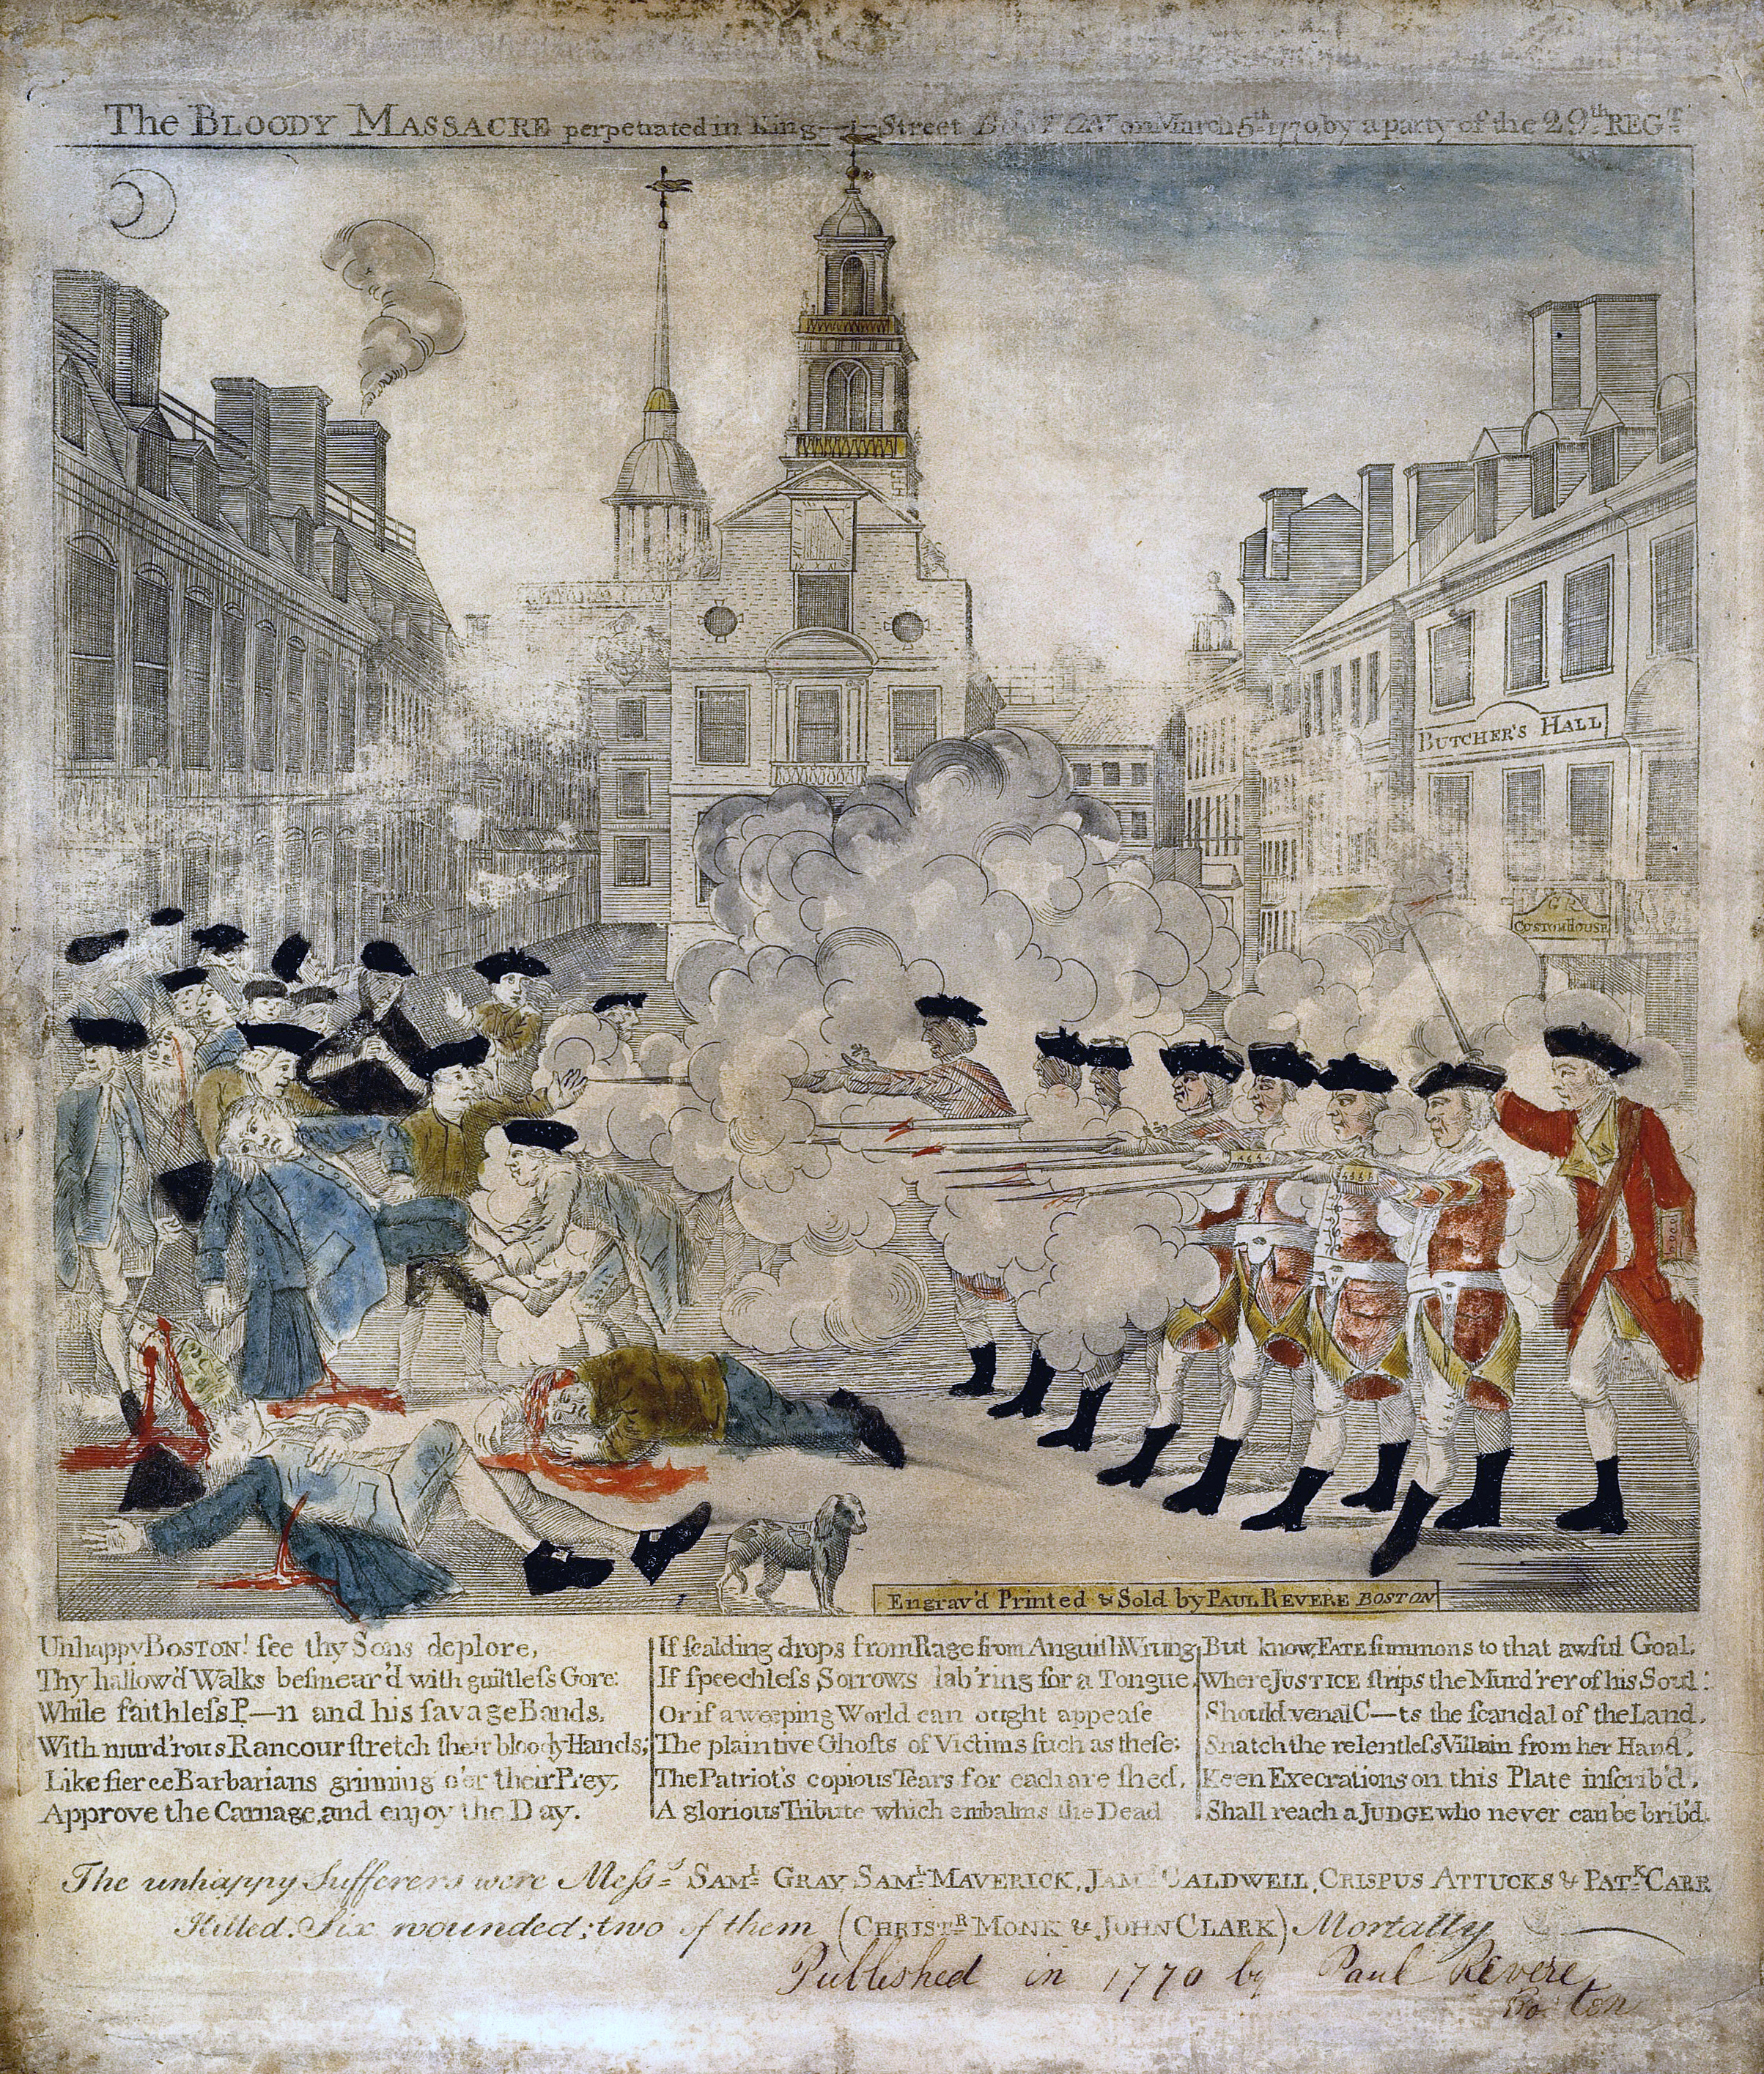 the boston massacre The boston massacre teacher notes: introduction to case: in this case, students explore different perspectives and viewpoints on who was responsible for the boston massacre.